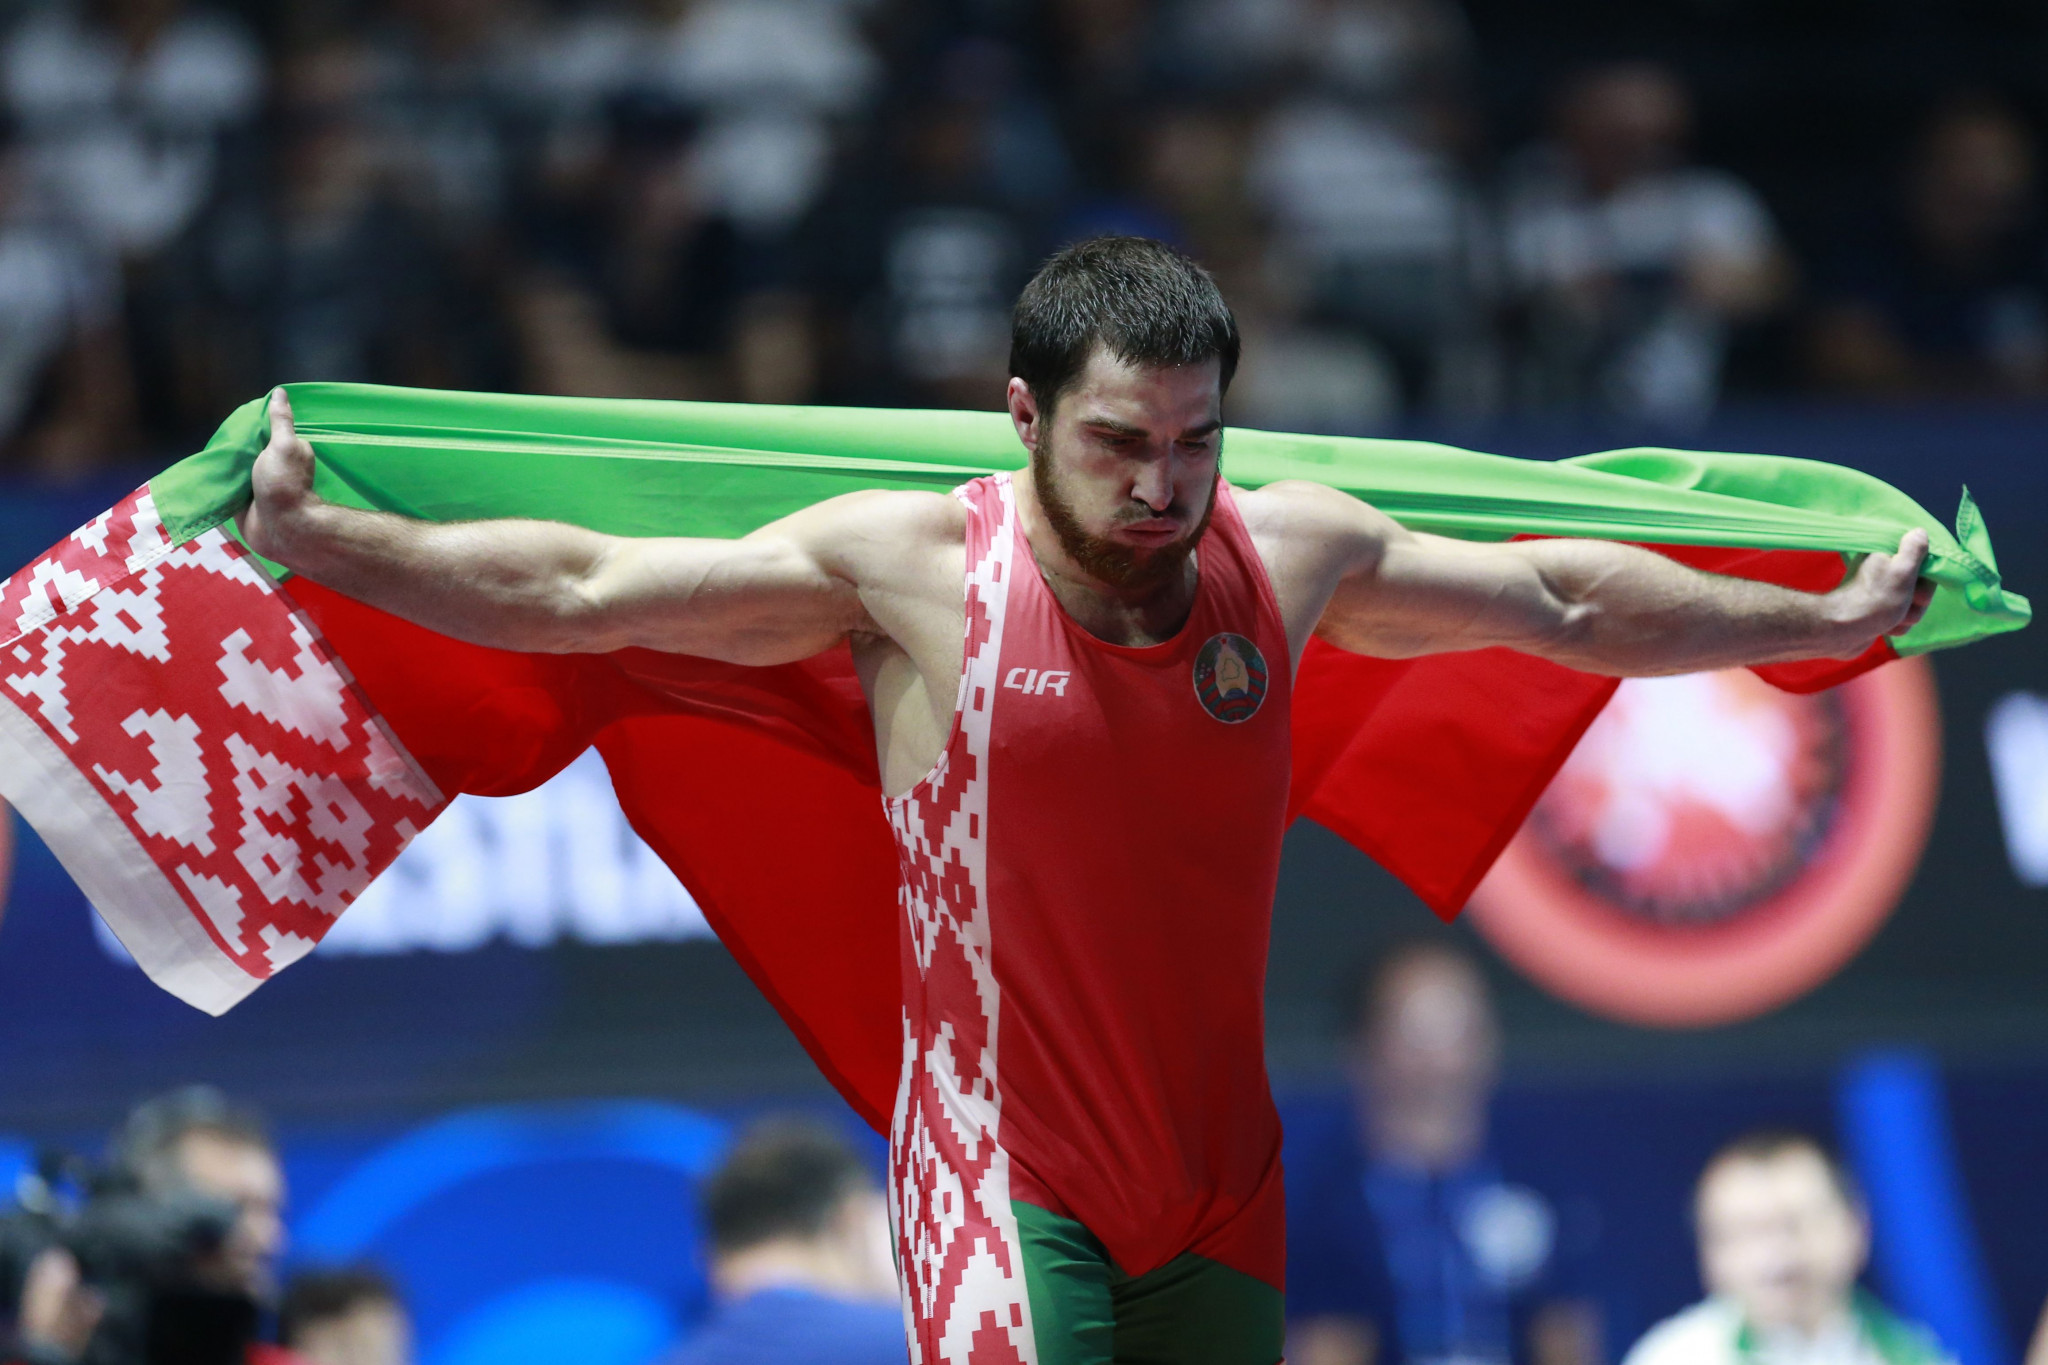 Hosts Belarus set ambitious wrestling target for Minsk 2019 European Games